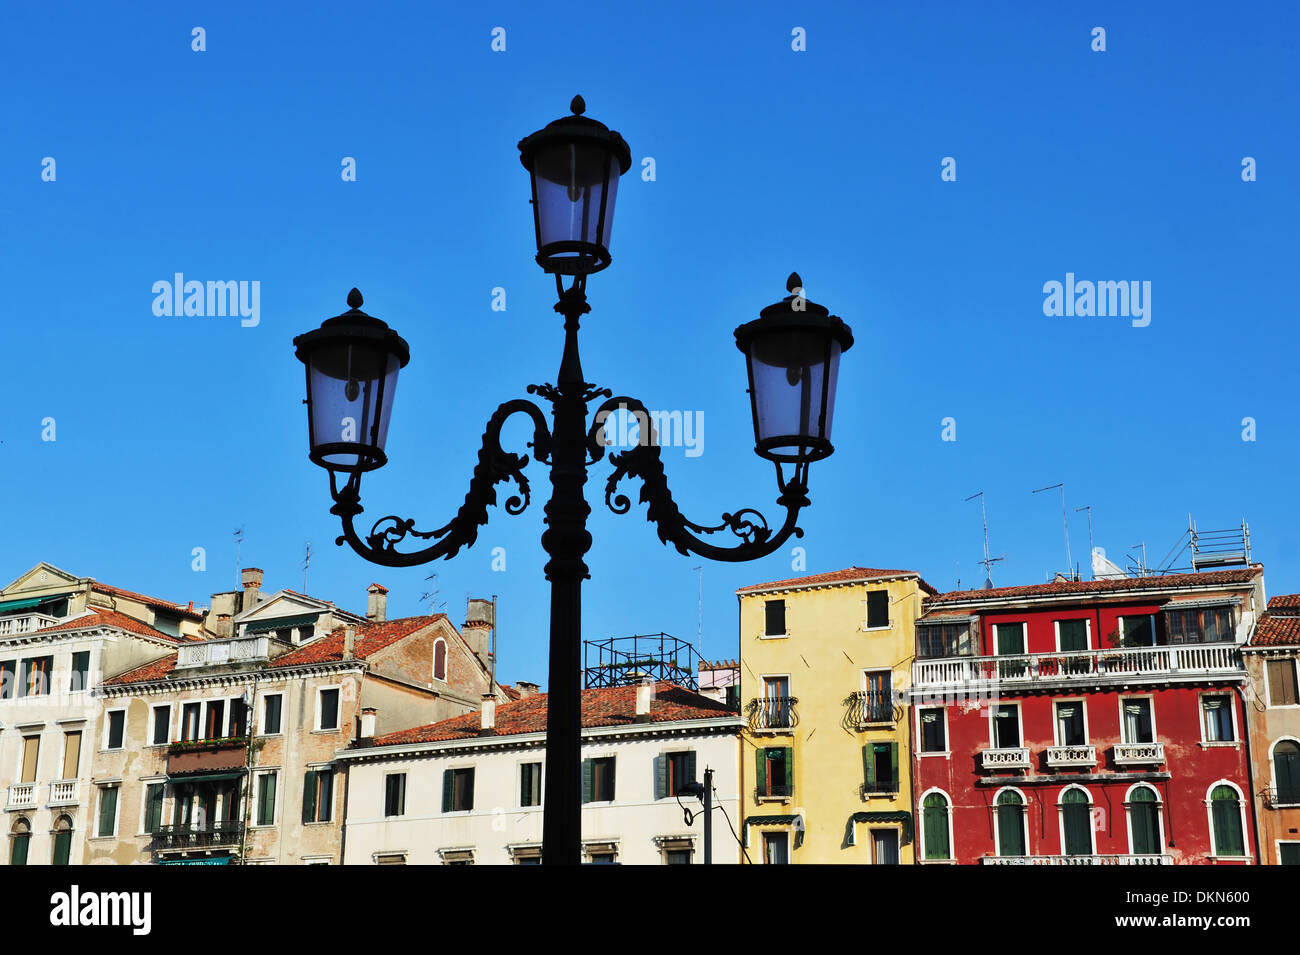 Silhouette of classic old street lamp against a raw of colorful Venetian buildings in Venice Italy - Stock Image